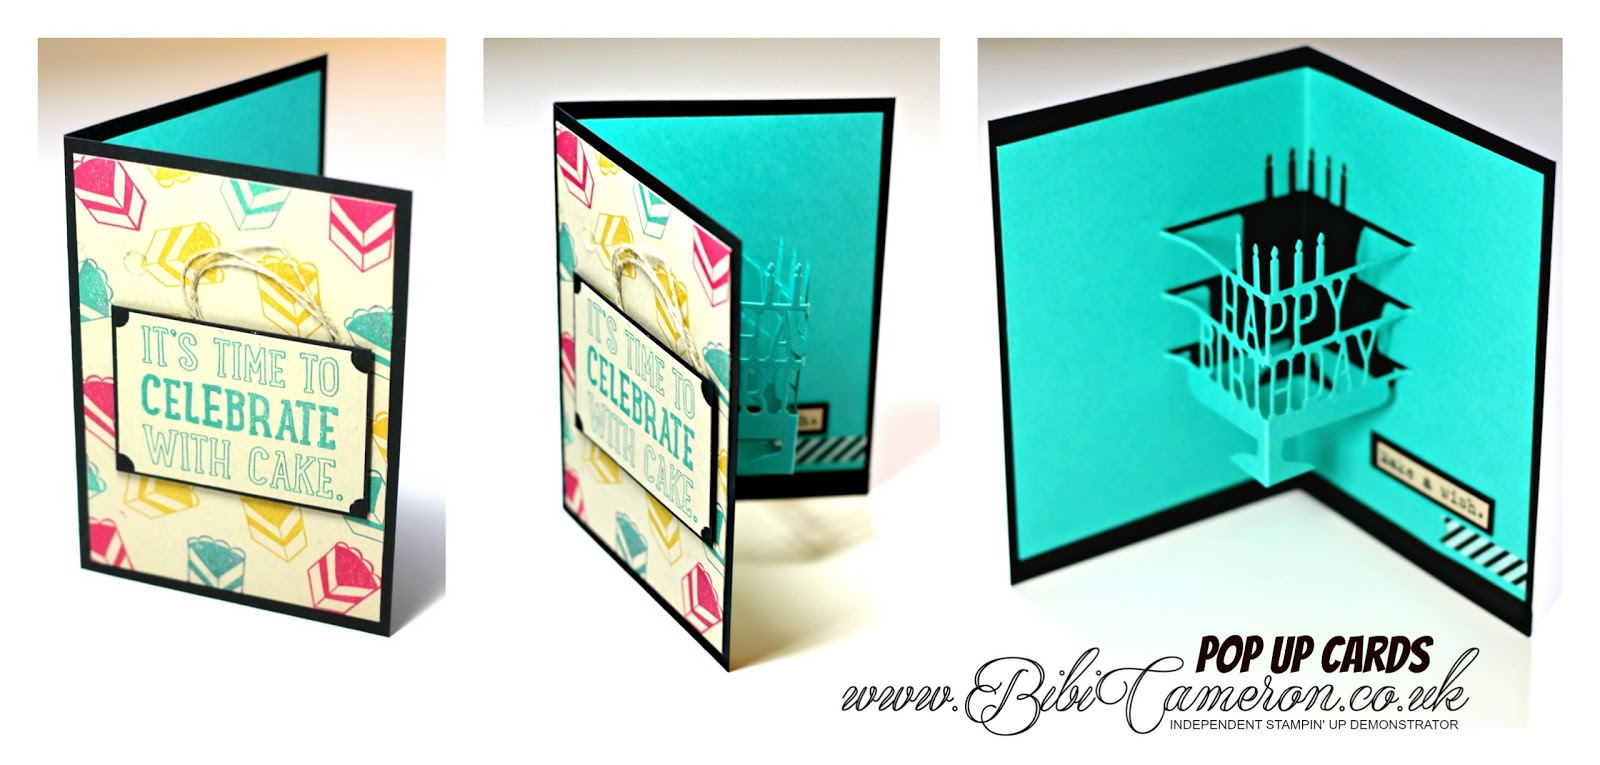 POP UP BIRTHDAY CAKE CARD – PARTY POP UP DIES BY STAMPIN UP #GDP015 – Theme Challenge